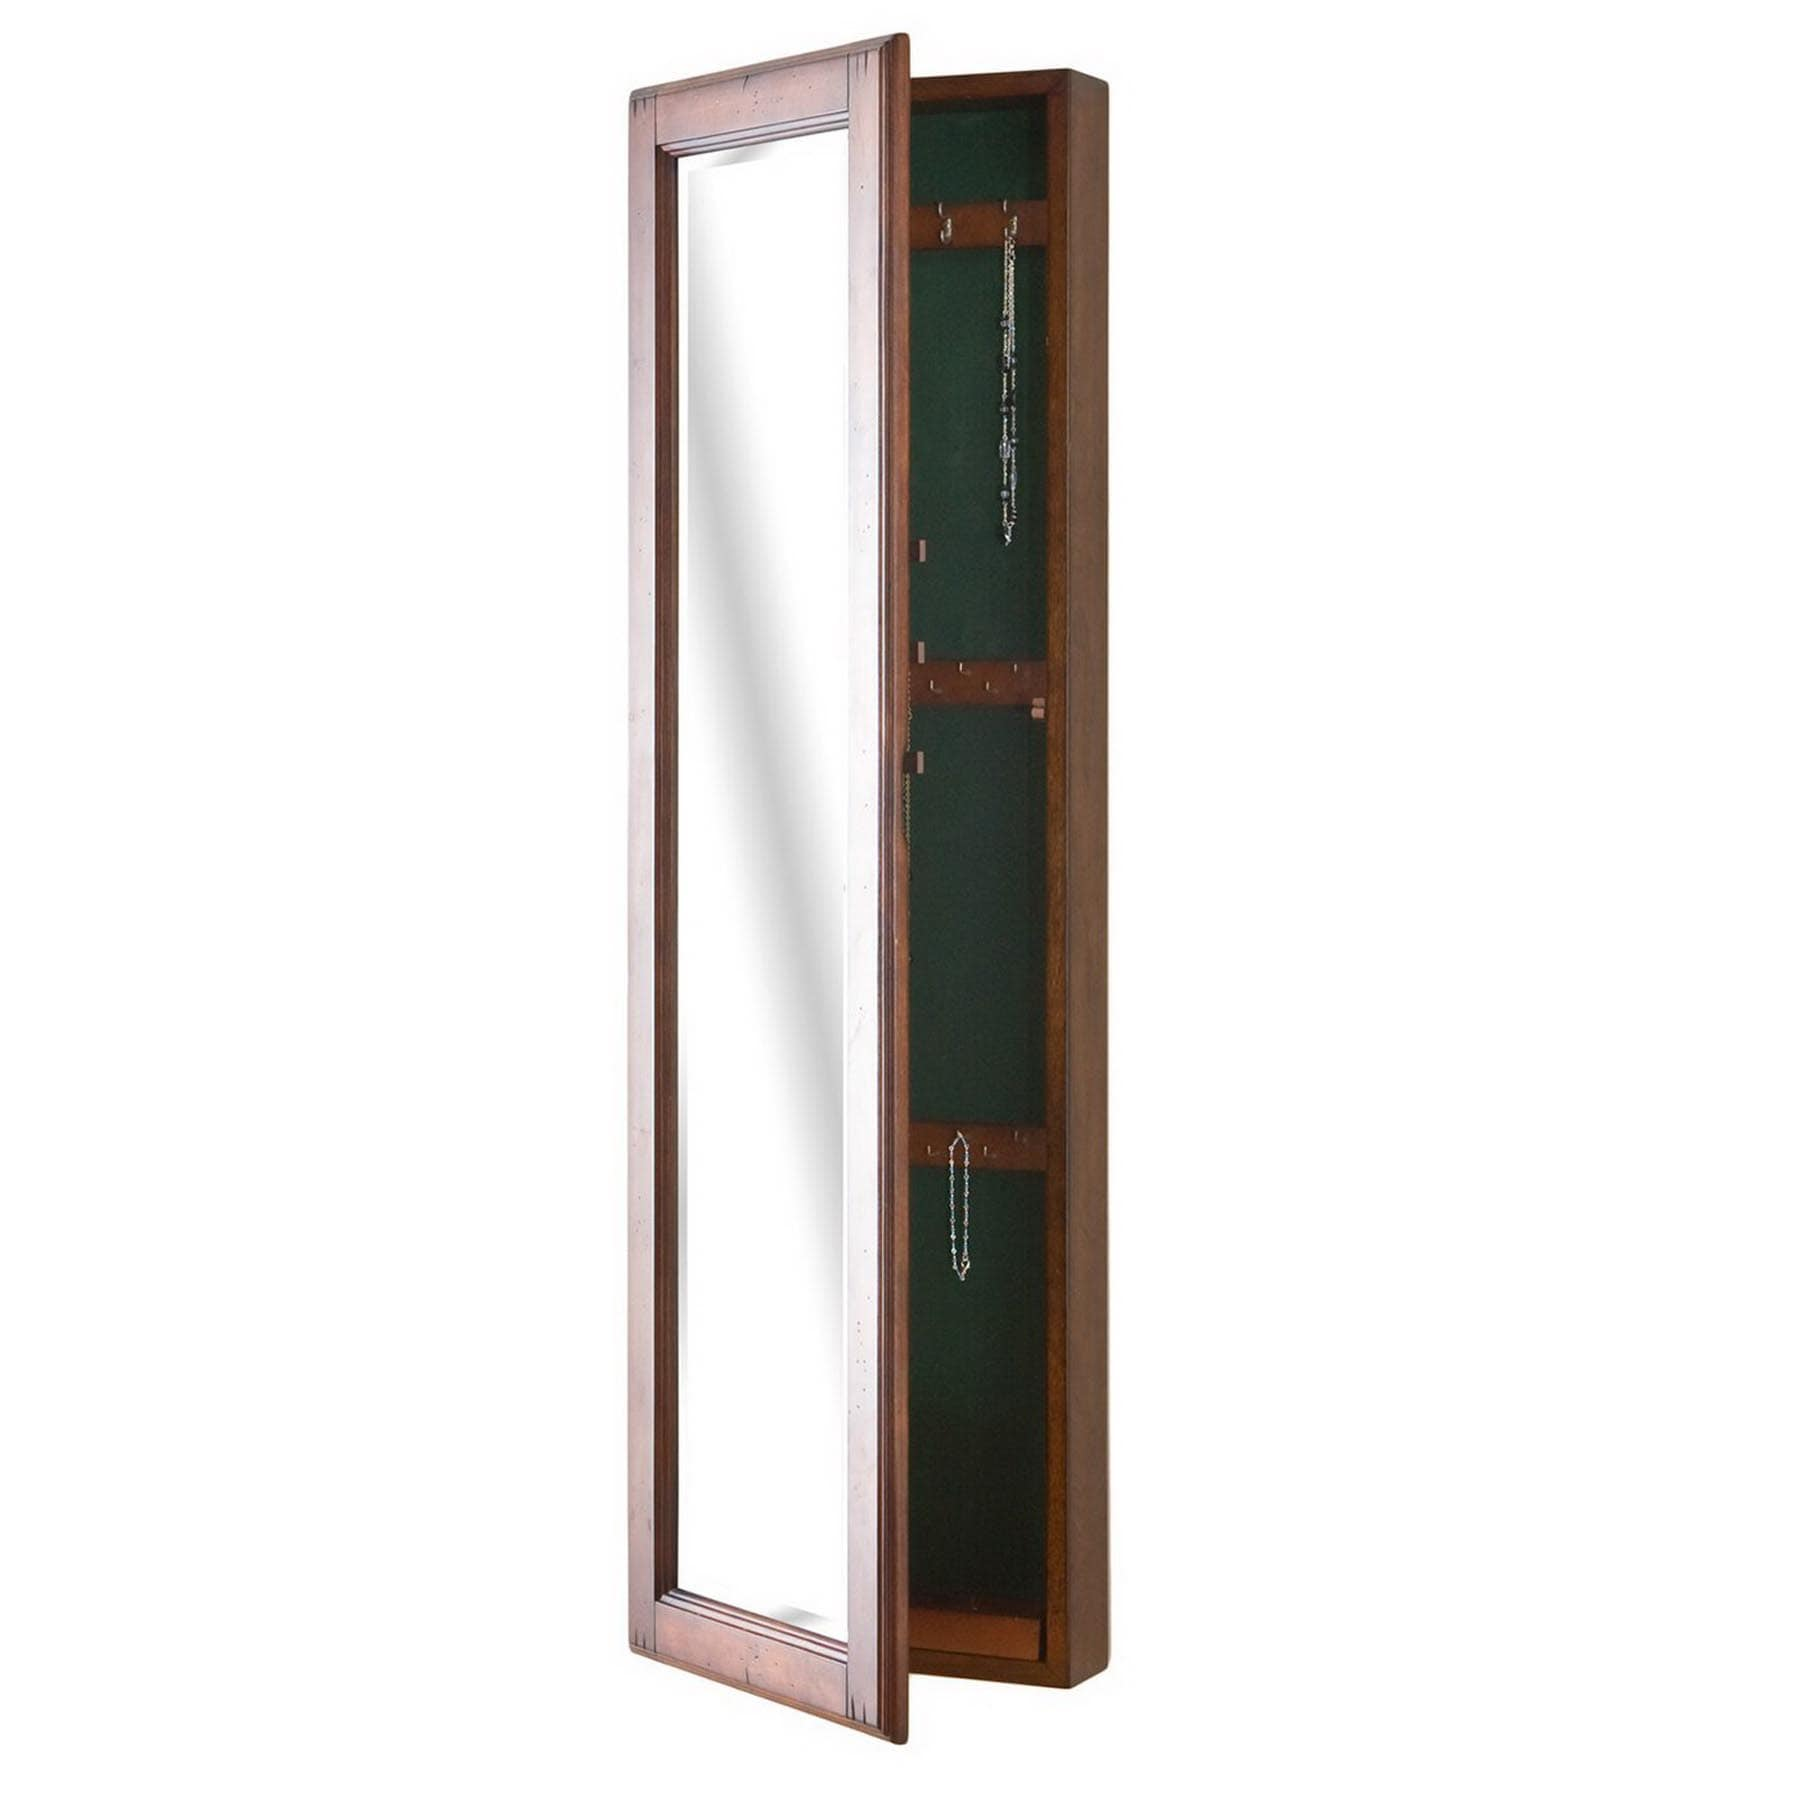 Dalton Home Collection Wall-Mounted Jewelry Armoire